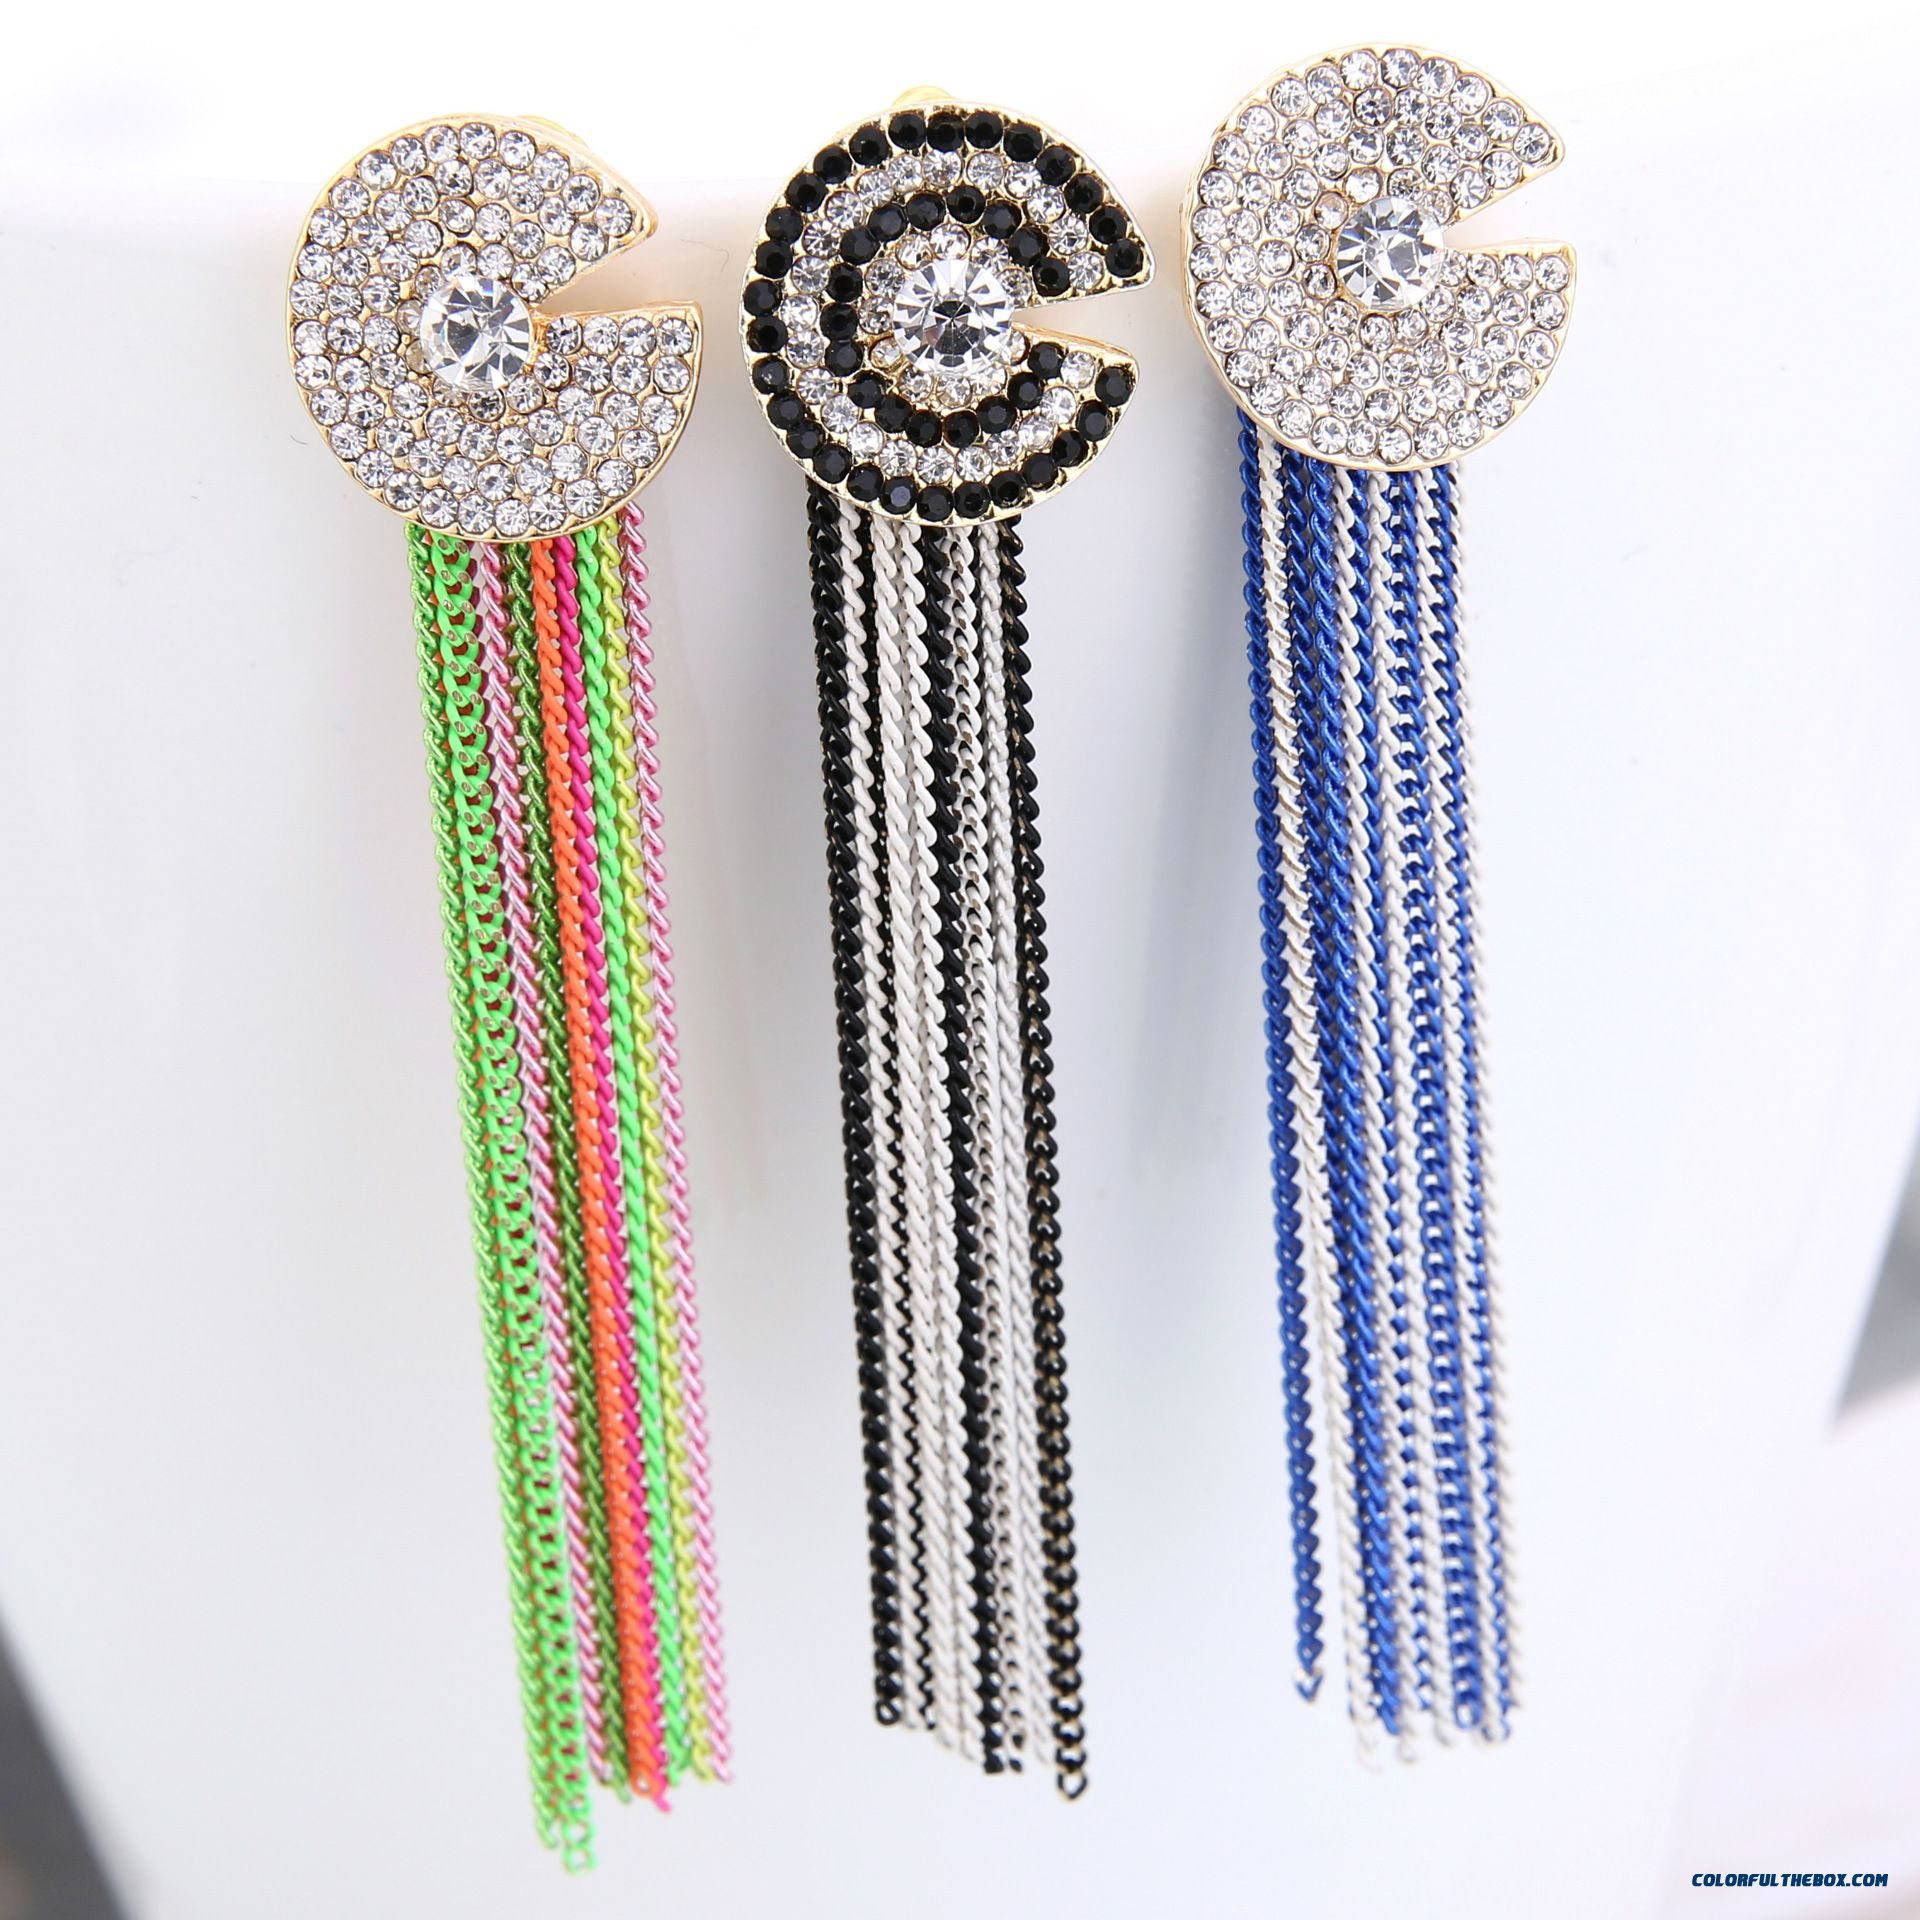 New Europe And The C-shaped Chain Full Of Diamond Tassel Stud Earrings Women Jewelry